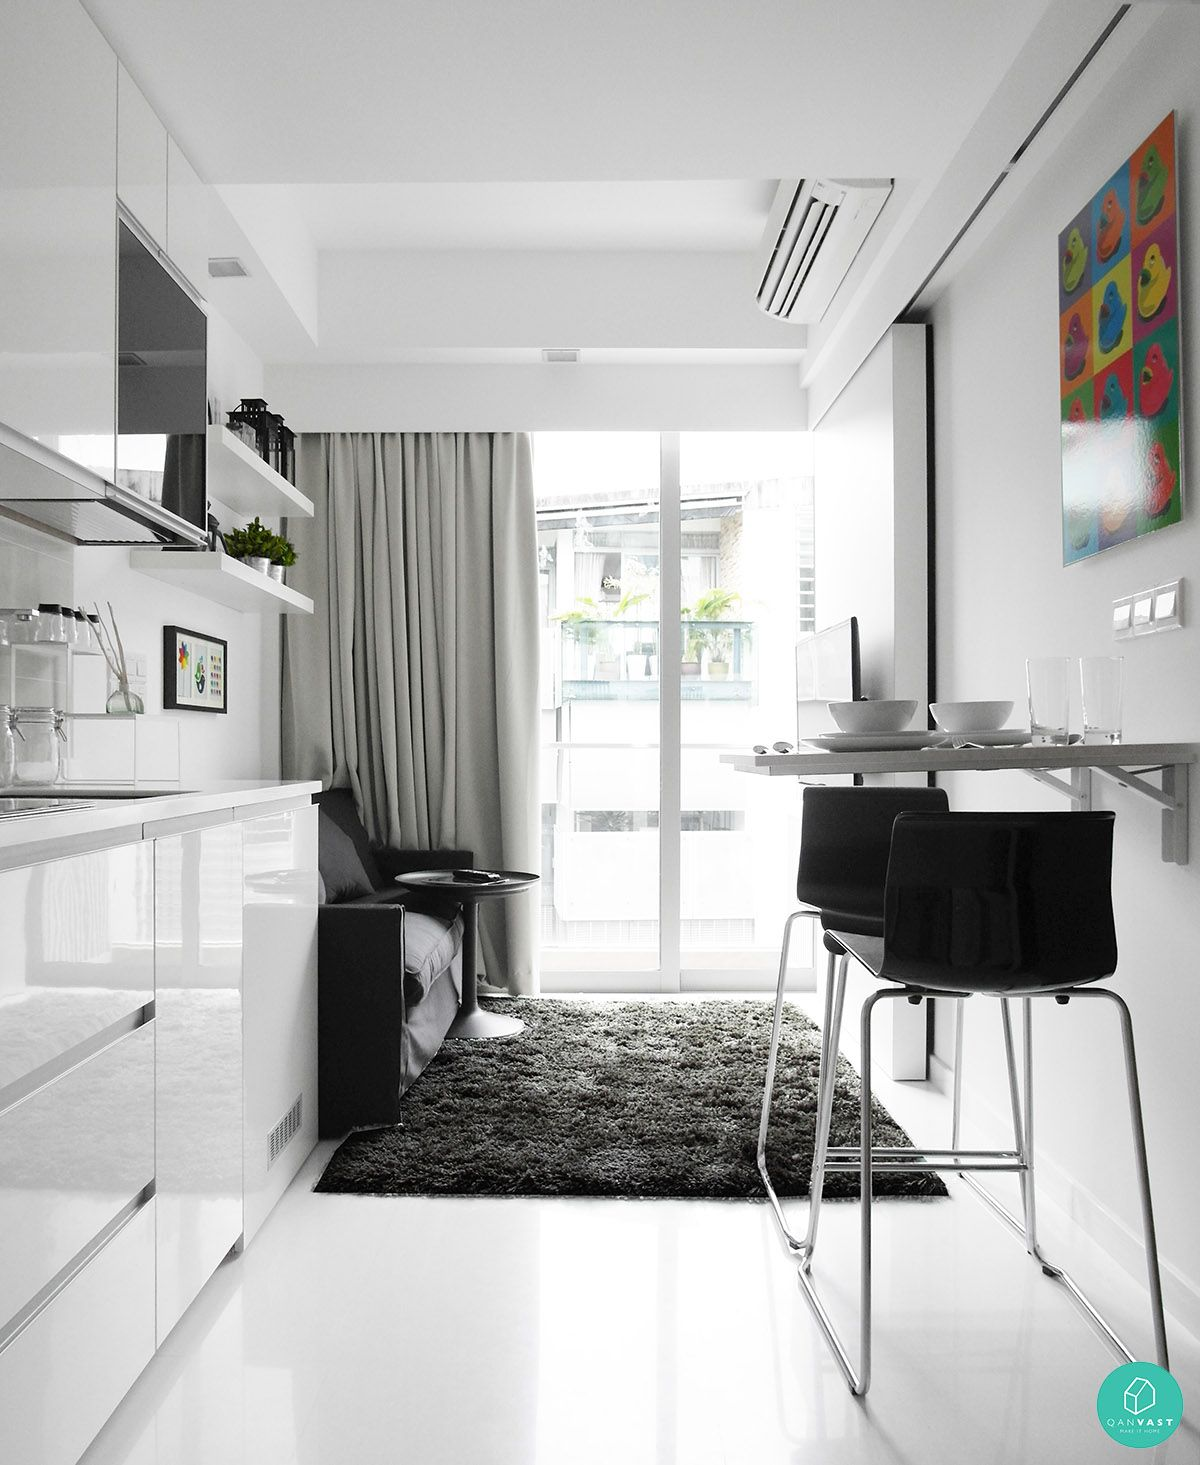 smart designs for small spaces in singapore homes | lofts, smart